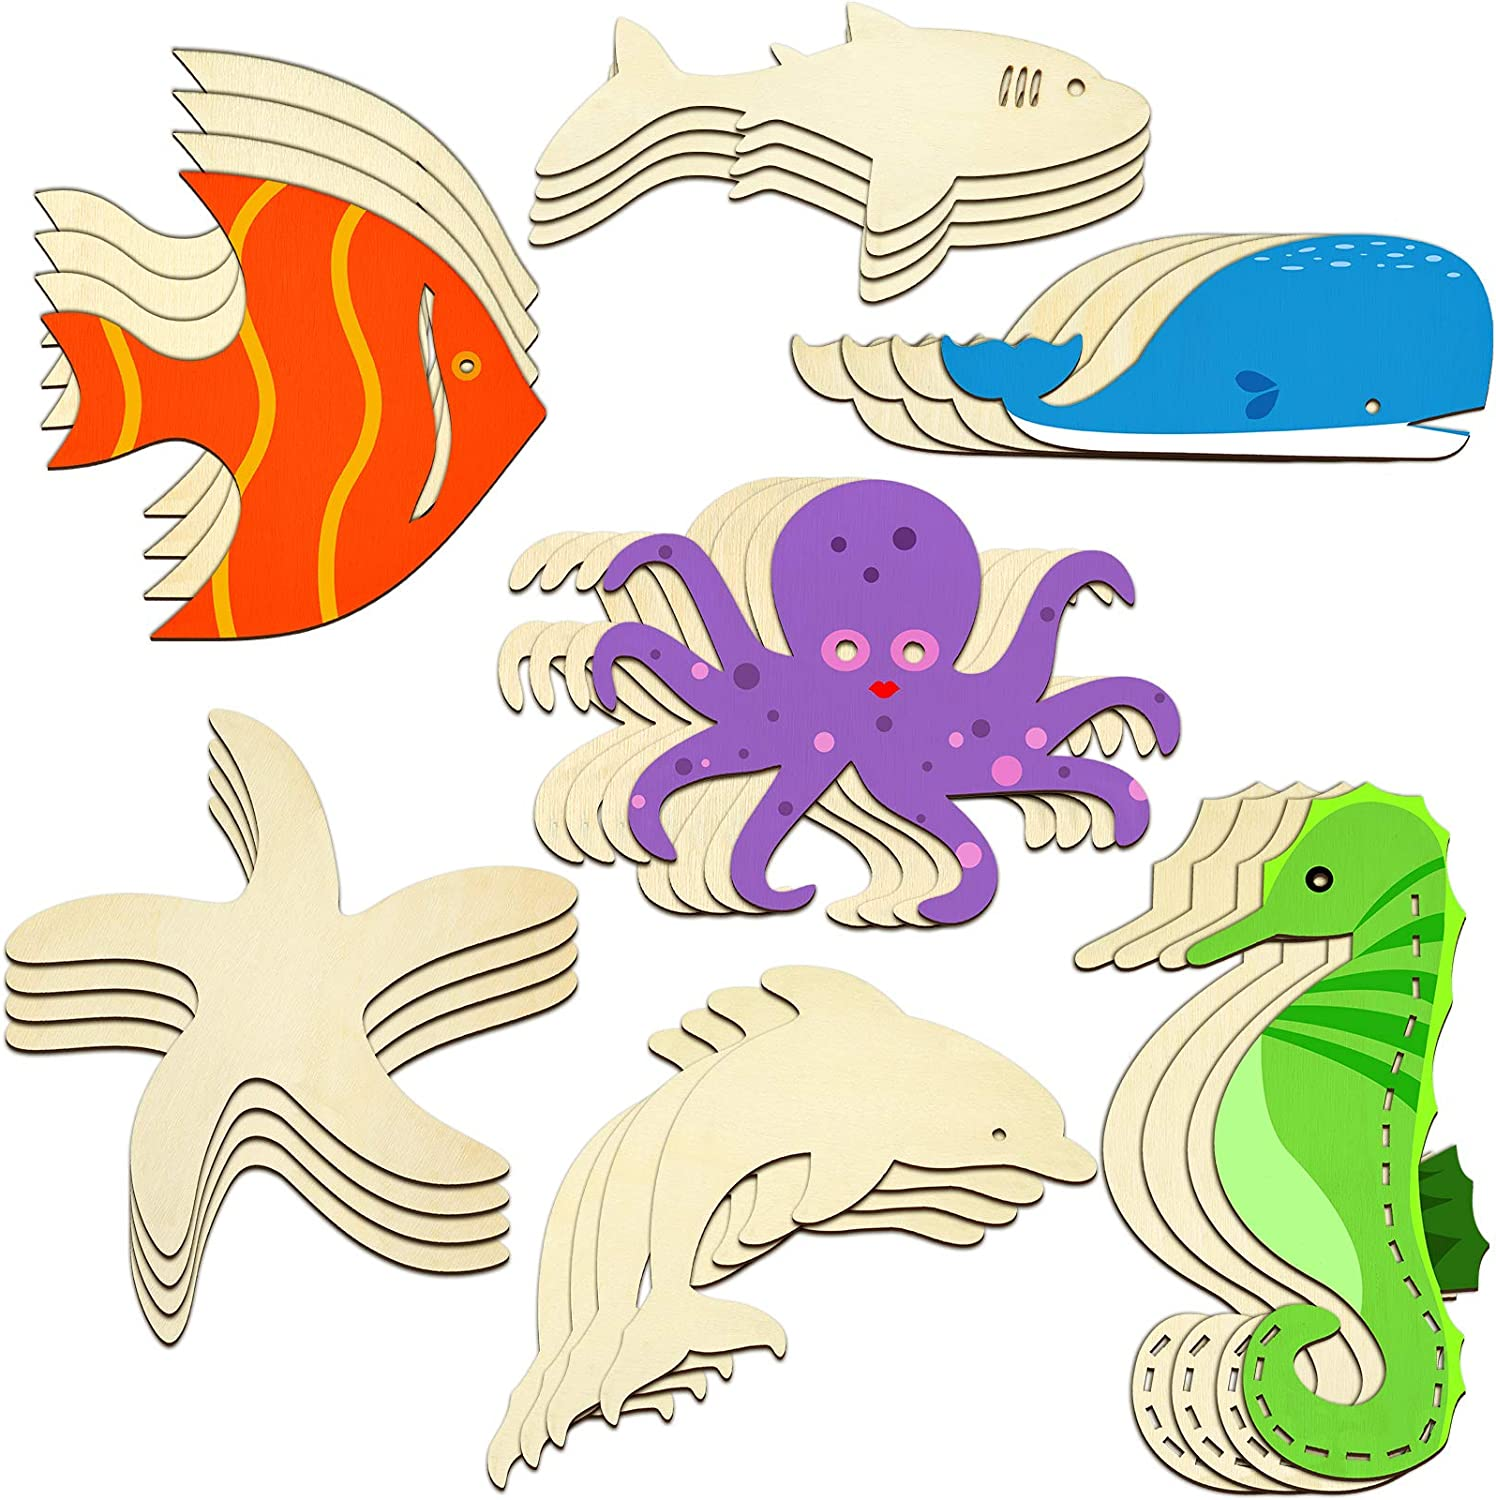 28 Piece Unfinished Wood Cutouts Ocean Animals Wooden Paint Crafts for Kids Home Decor Ornament DIY Craft Art Project, Octopus, Shark, Whale, Dolphin, Seahorse, Fish, Starfish Shape